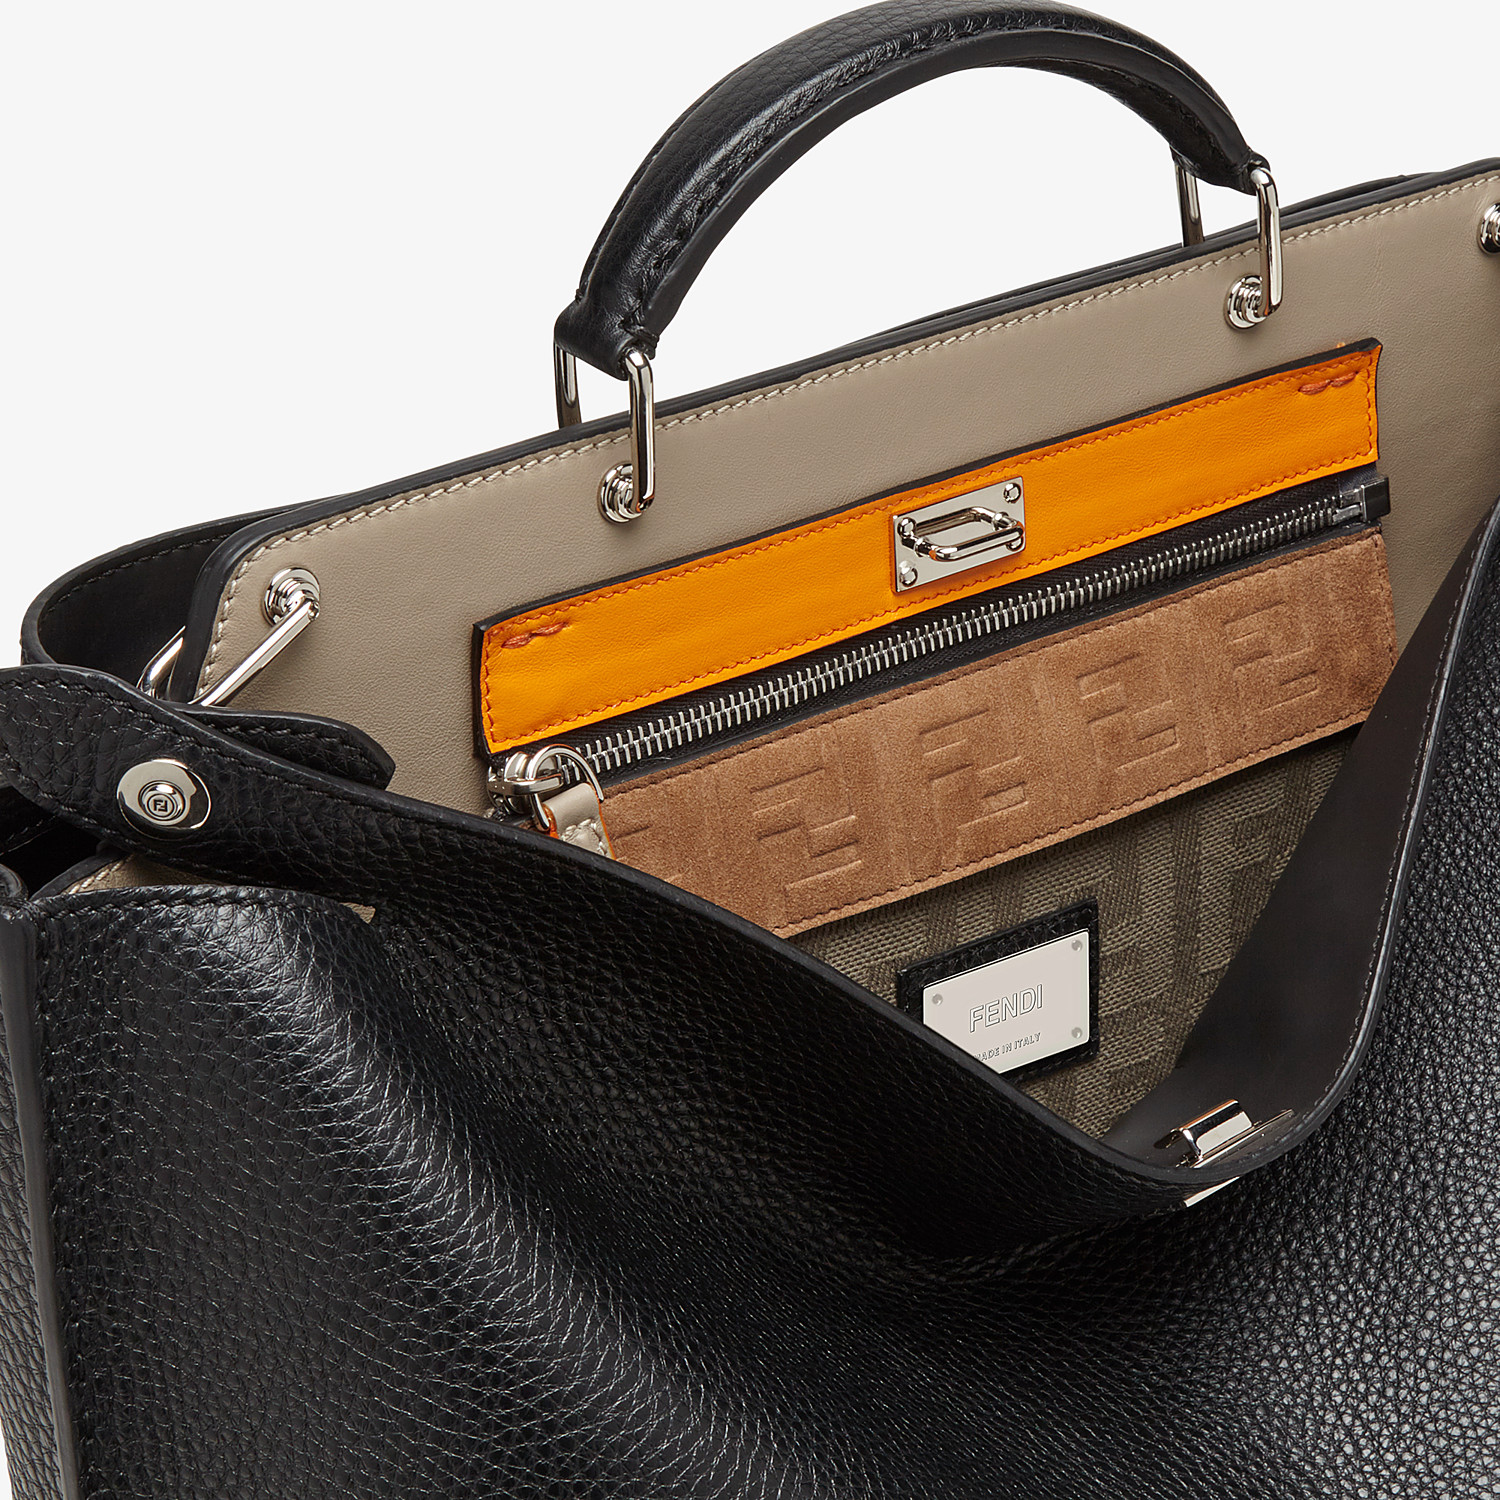 FENDI PEEKABOO ICONIC ESSENTIAL - Black leather bag - view 6 detail